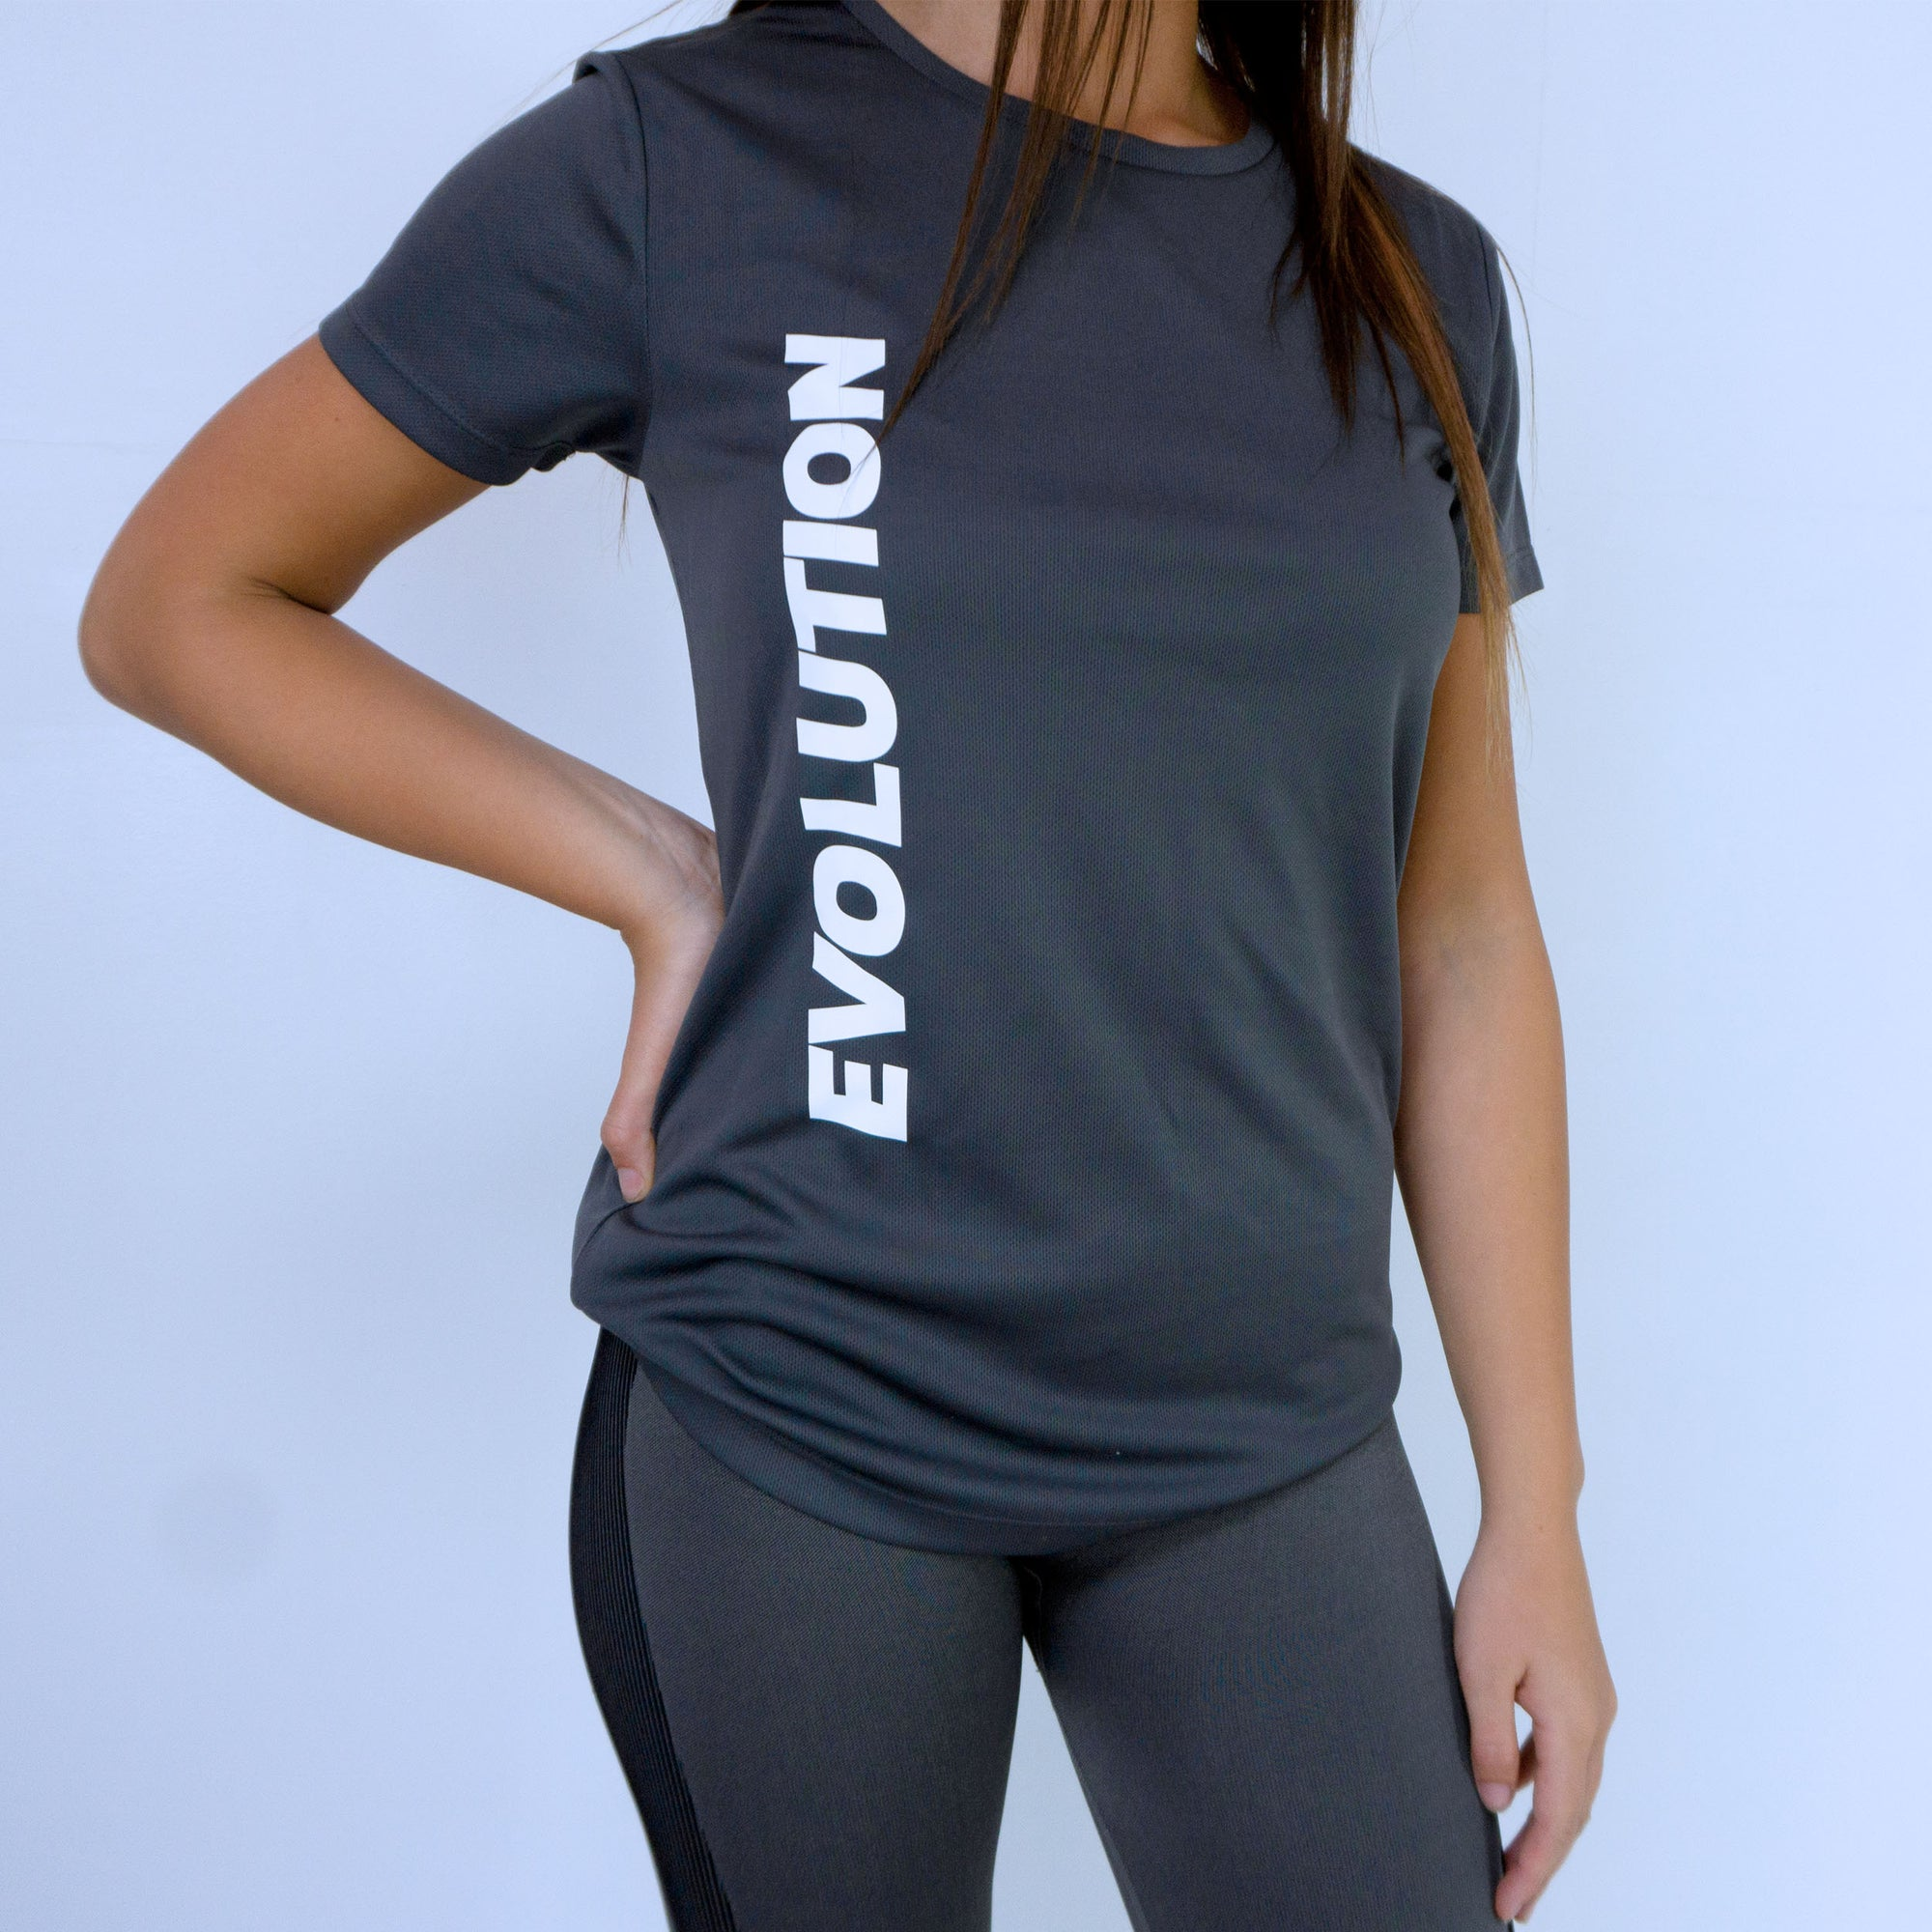 Evolution Fitness Women's T-shirt - Charcoal